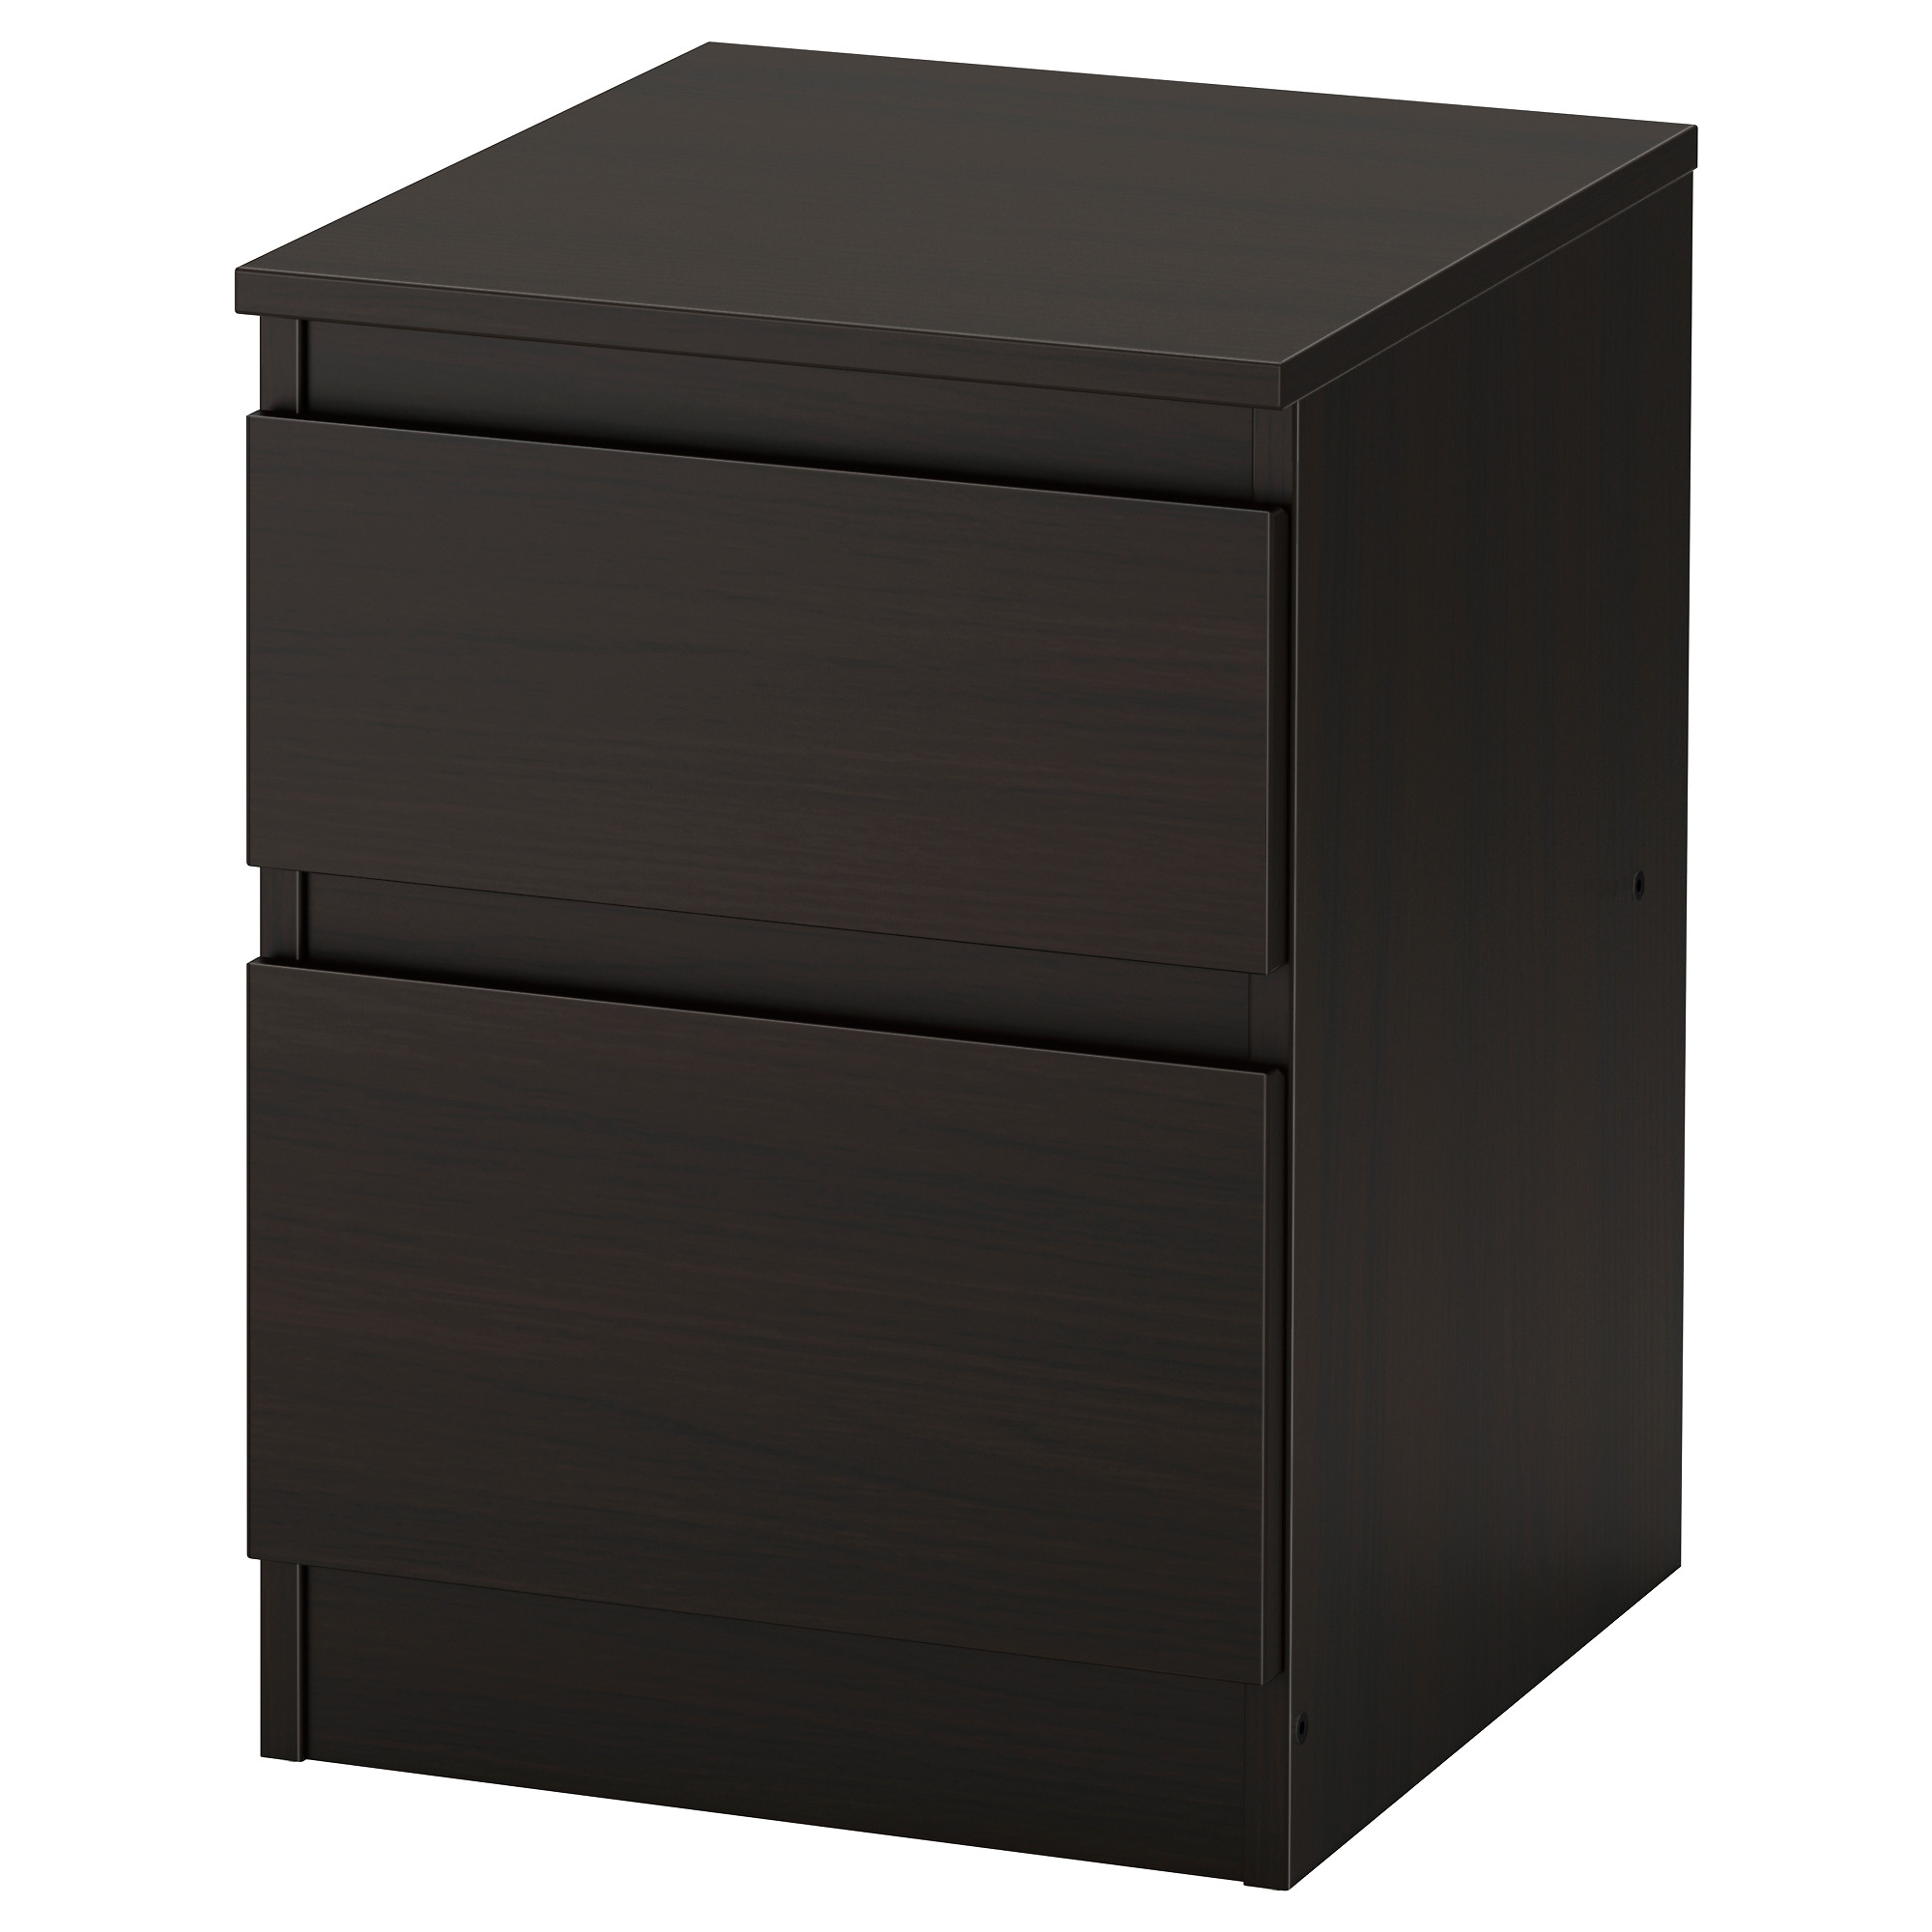 Ikea bedroom furniture chest of drawers - Kullen 2 Drawer Chest Black Brown Width 13 3 4